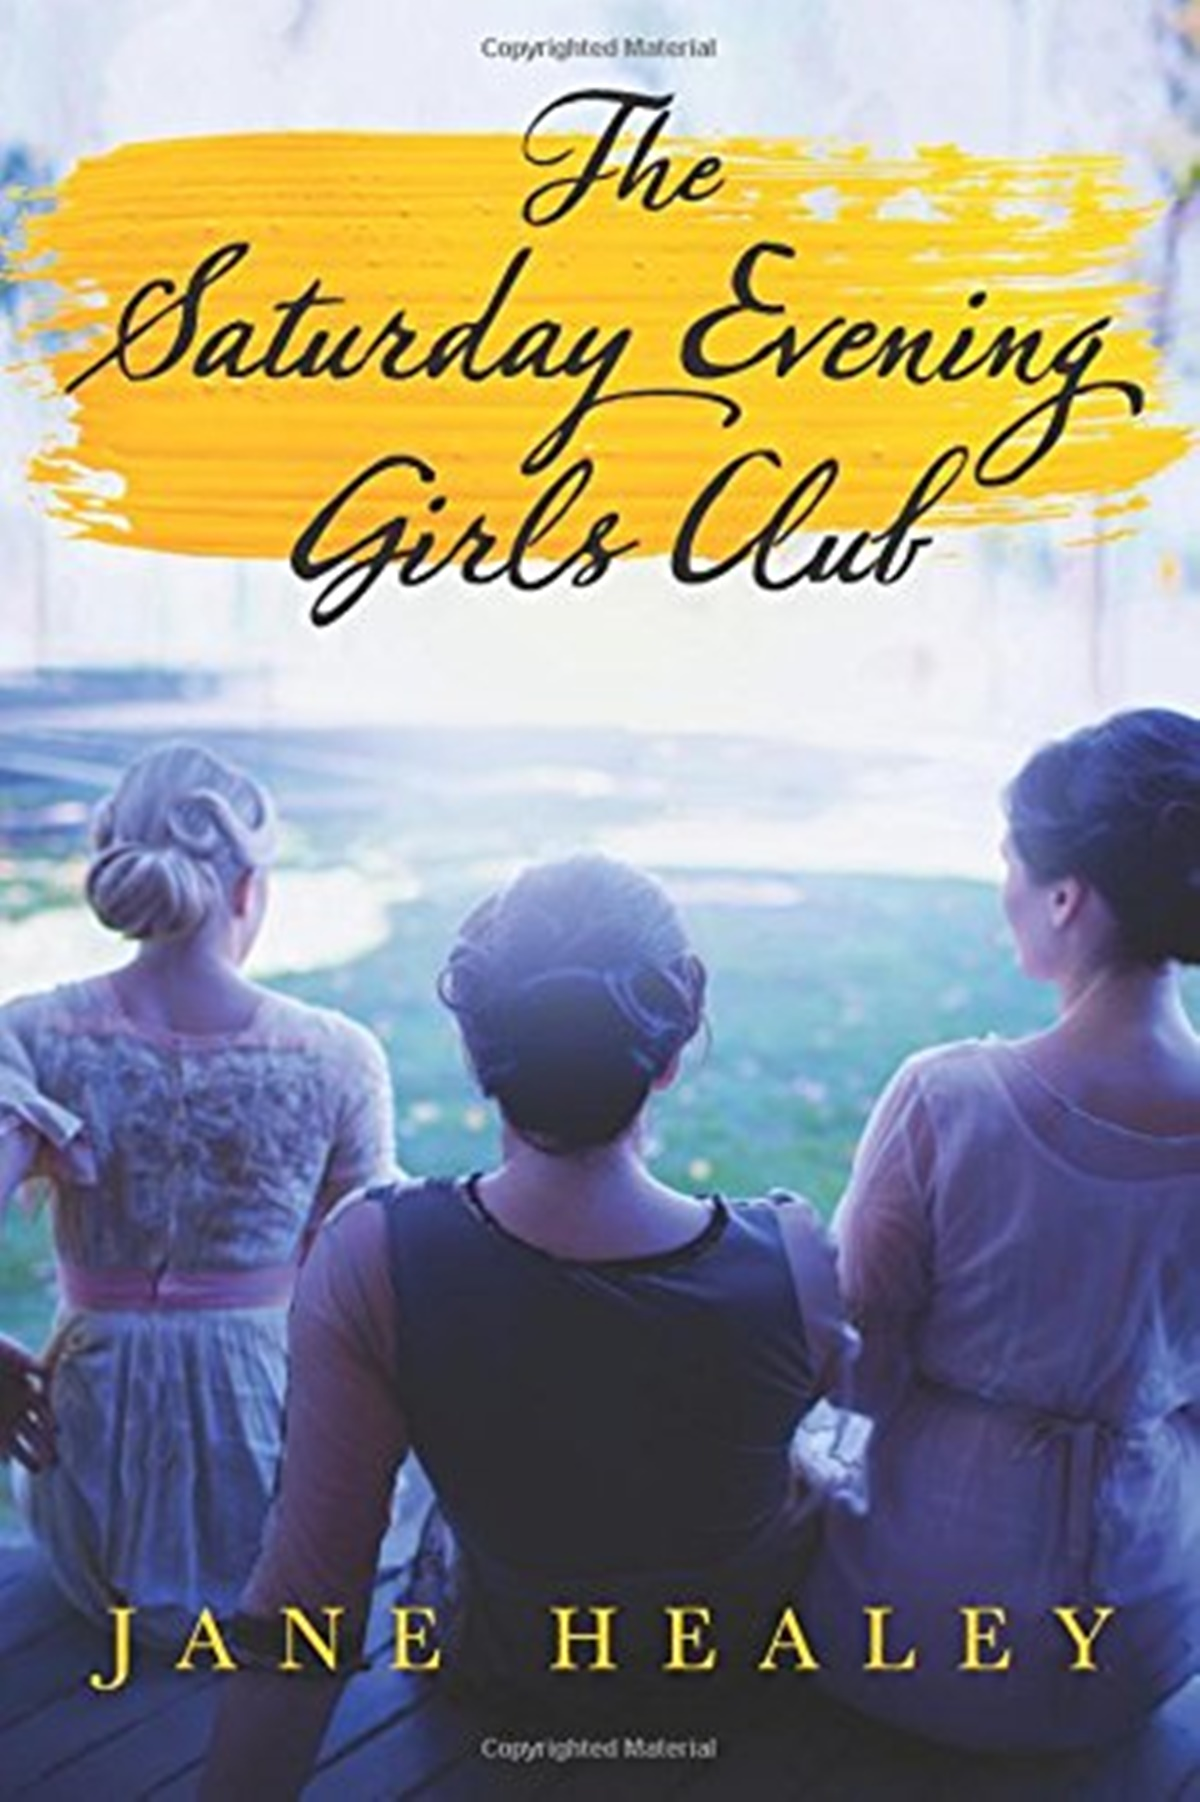 Historical Fiction Books, cover of The Saturday Evening Girls Club by Jane Healey, books